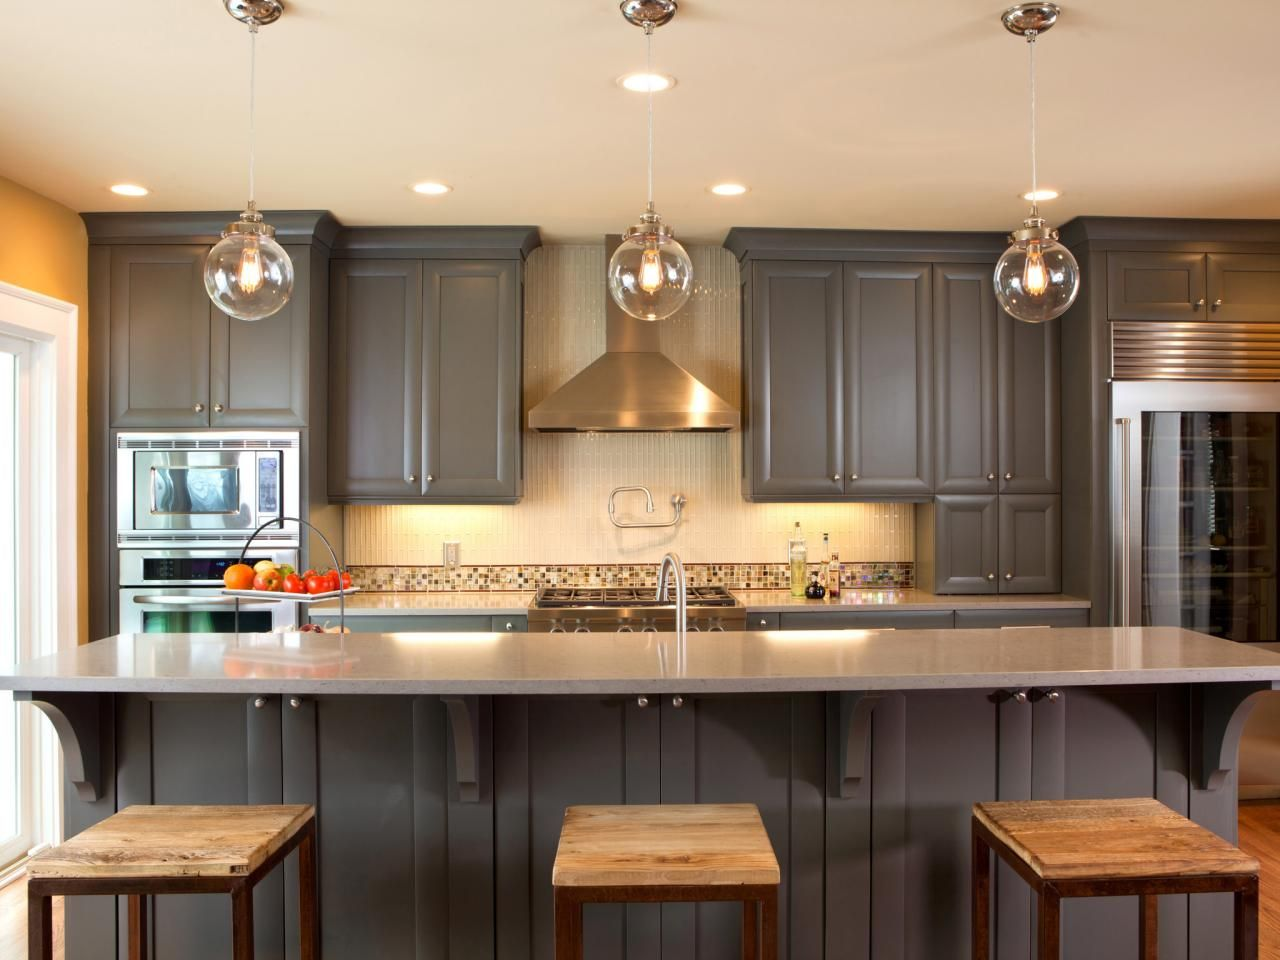 Funky Kitchen Cabinets Funky Paint Ideas For Kitchen Cabinets Cliff Kitchen